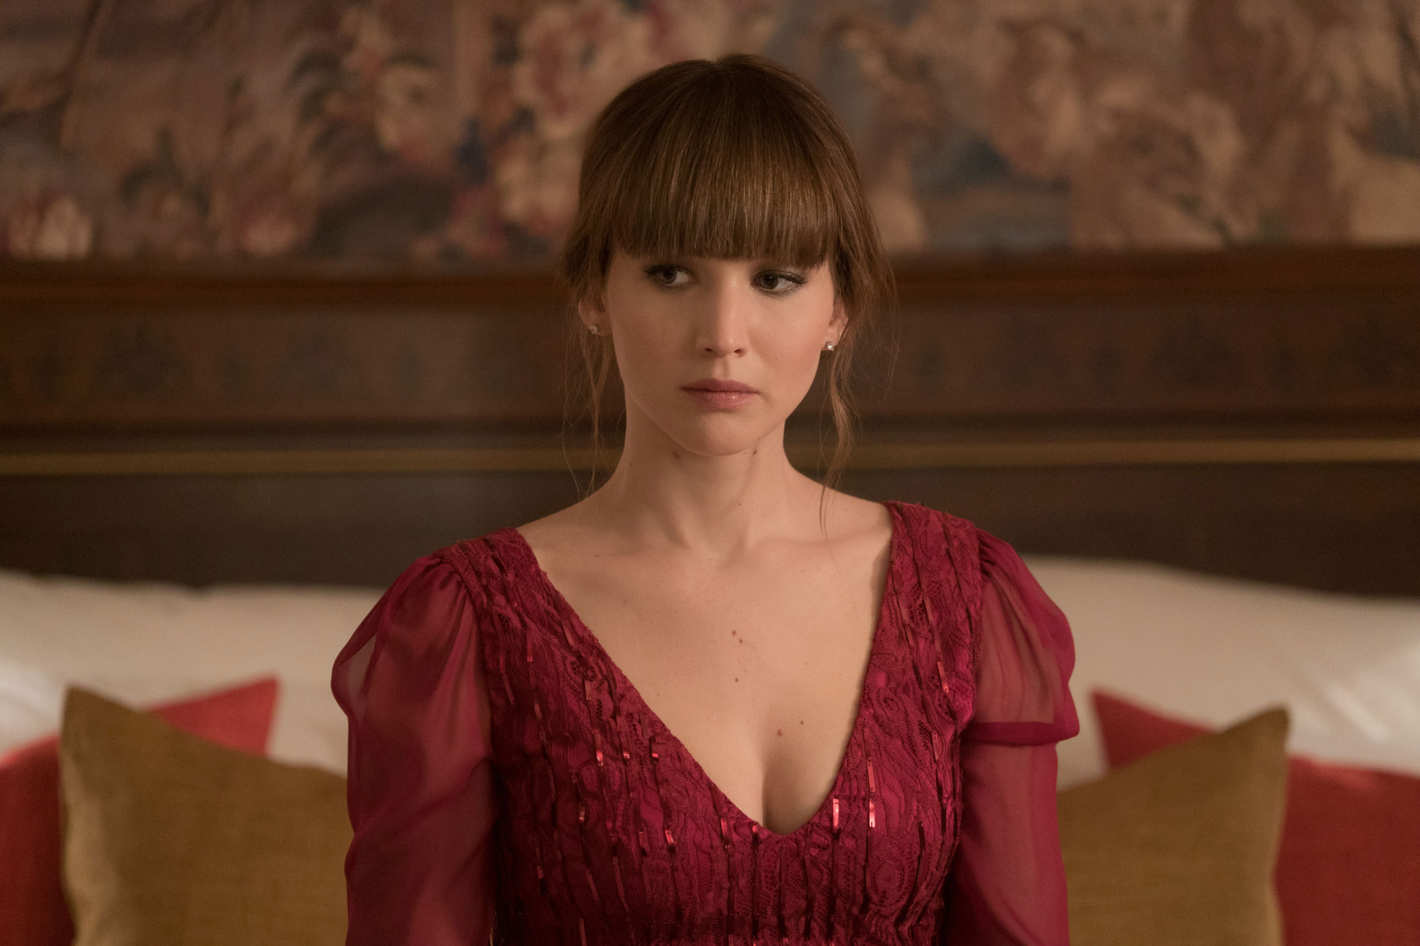 Give Jlaw S Bangs An Oscar For Their Red Sparrow Performance